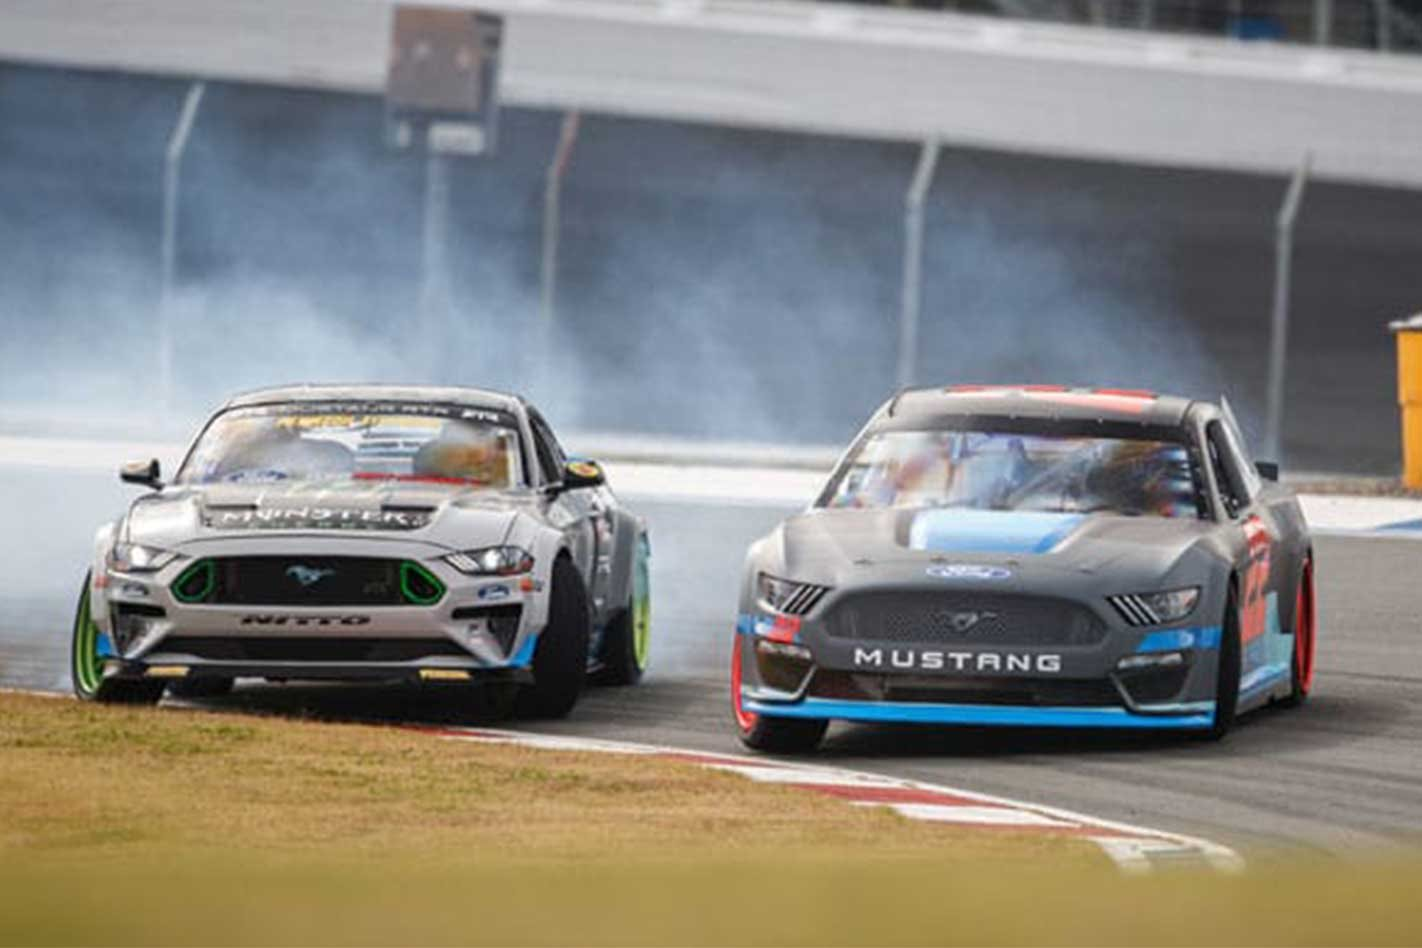 Watch fords mustang nascar and mustang rtr tandem drifting